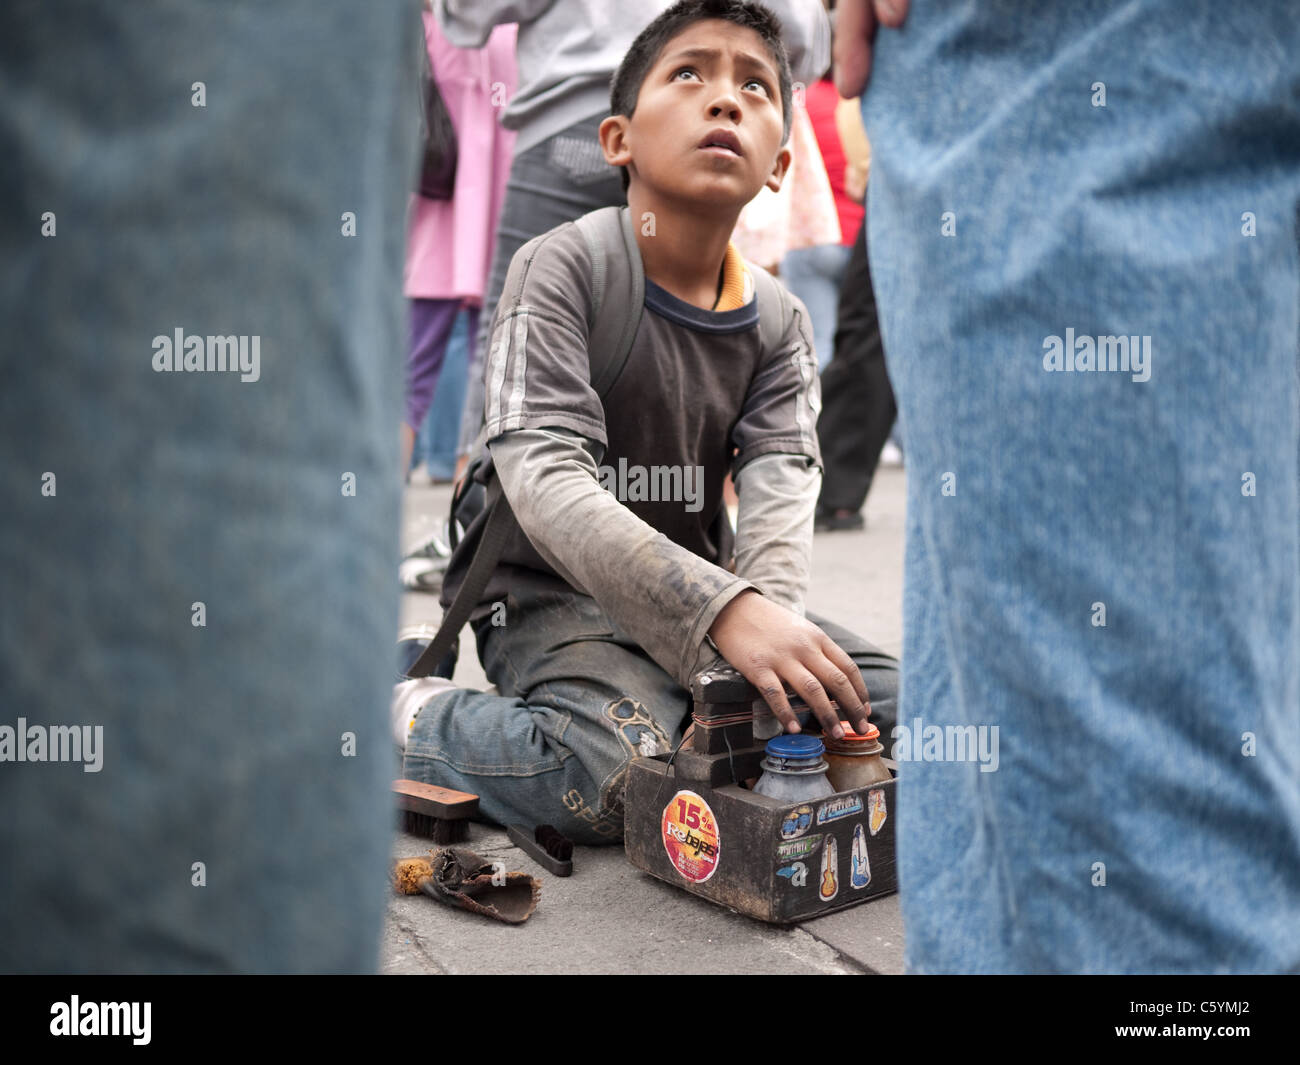 A young shoe shiner looks up at a client while polishing his shoes. - Stock Image